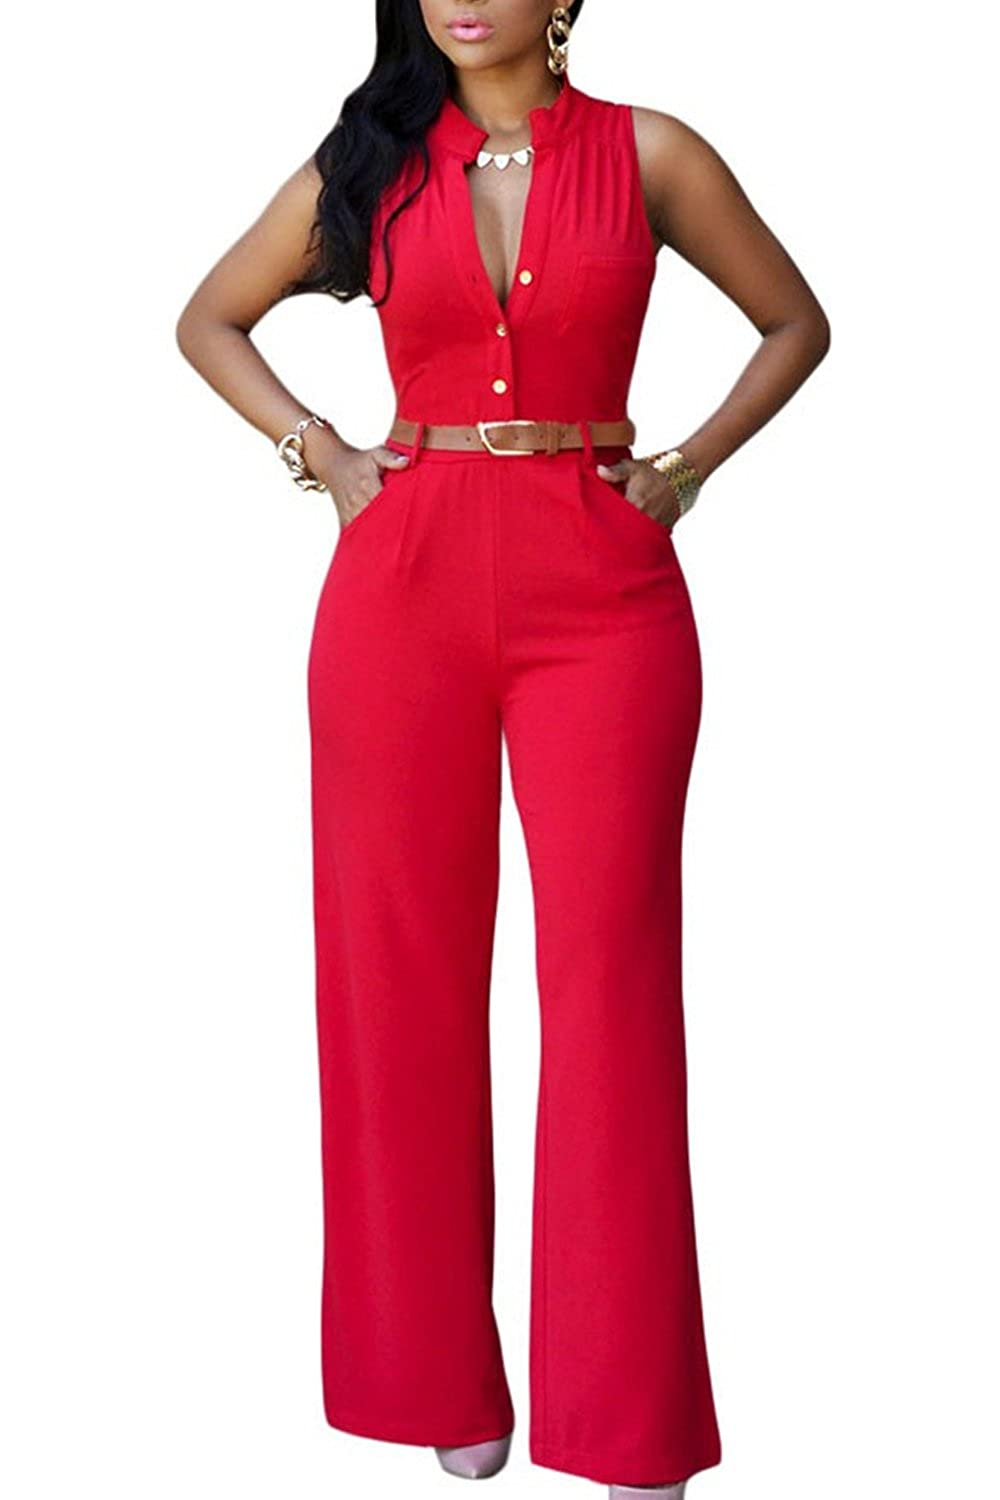 Zilcremo Elegant Sleeveless Full Summer Jumpsuits Overall for Women with Belt CAFZ596